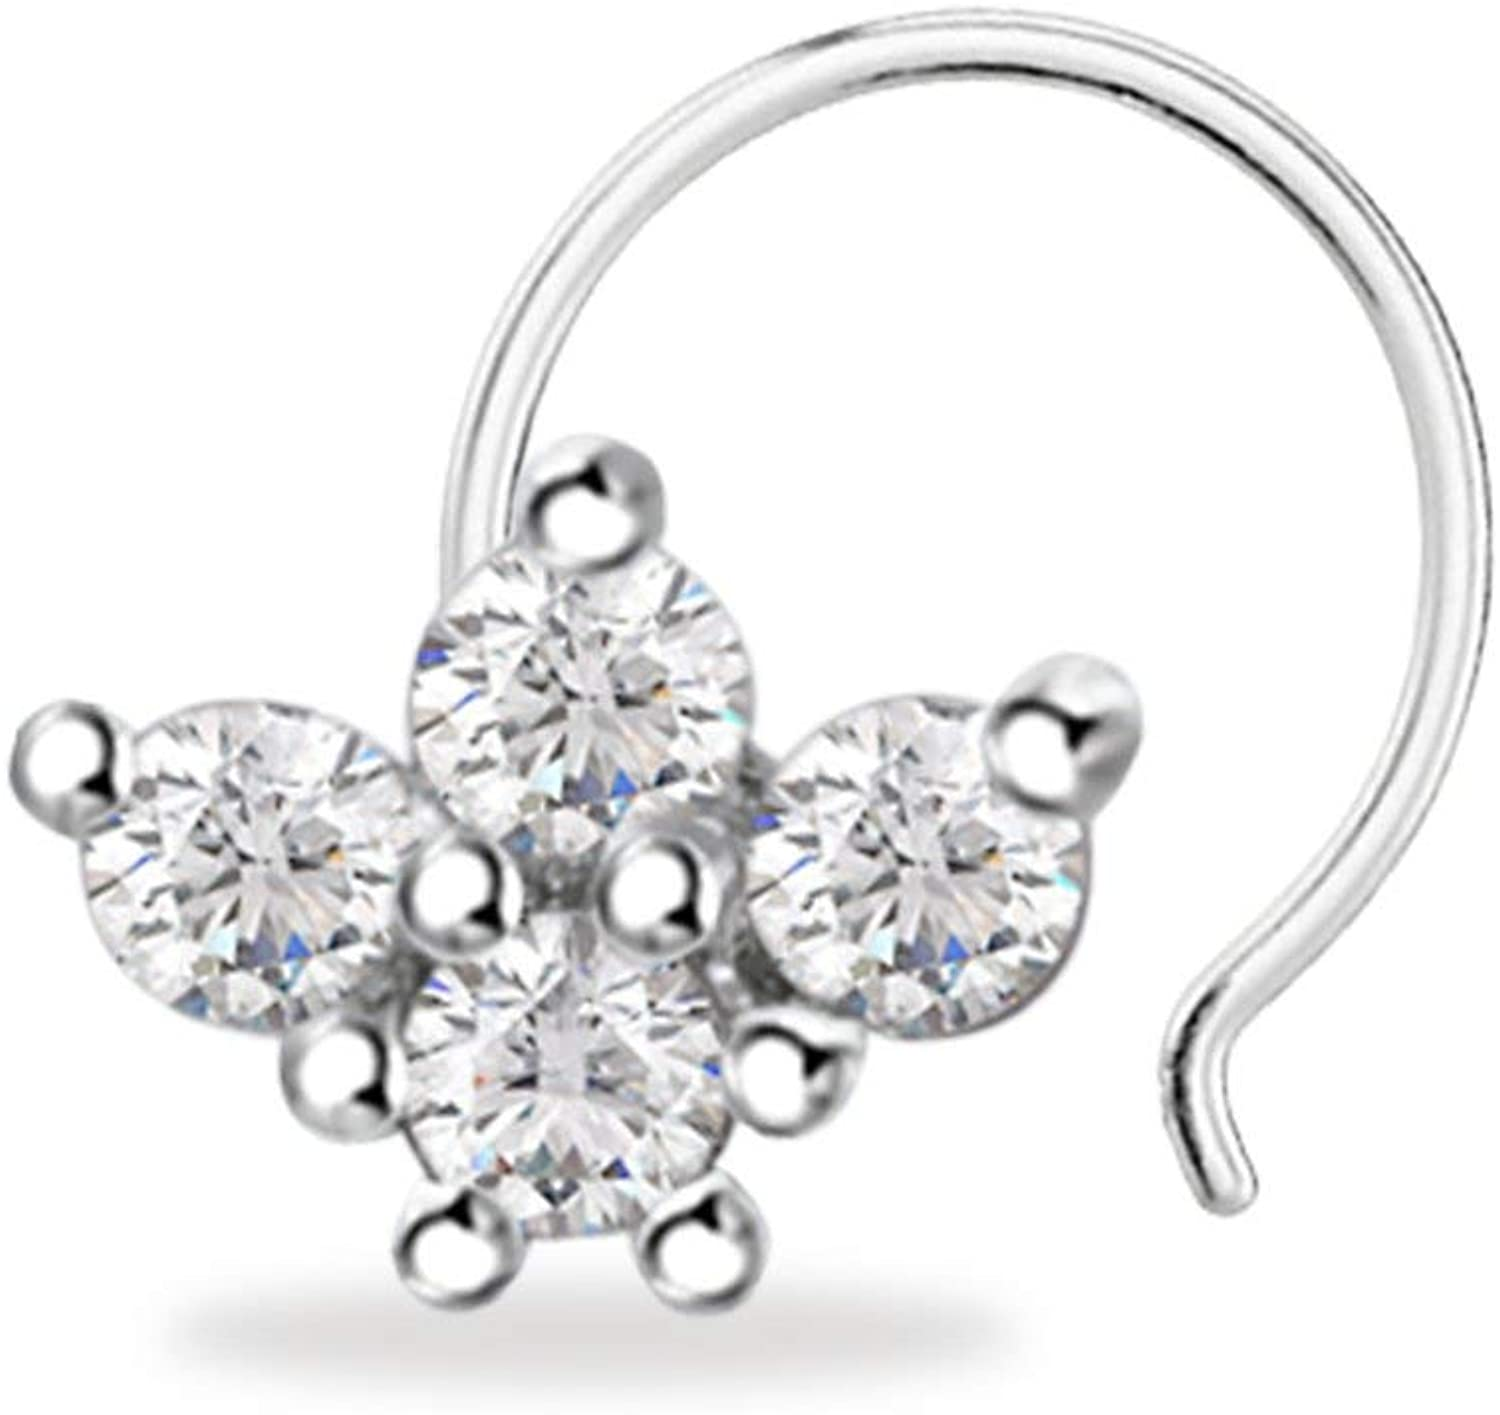 Trendzjewels 0.50 Ct Created Round Cut White Diamond 925 Sterling Silver 14K White Gold Finish Half Flower Nose Pin for Women's & Girl's